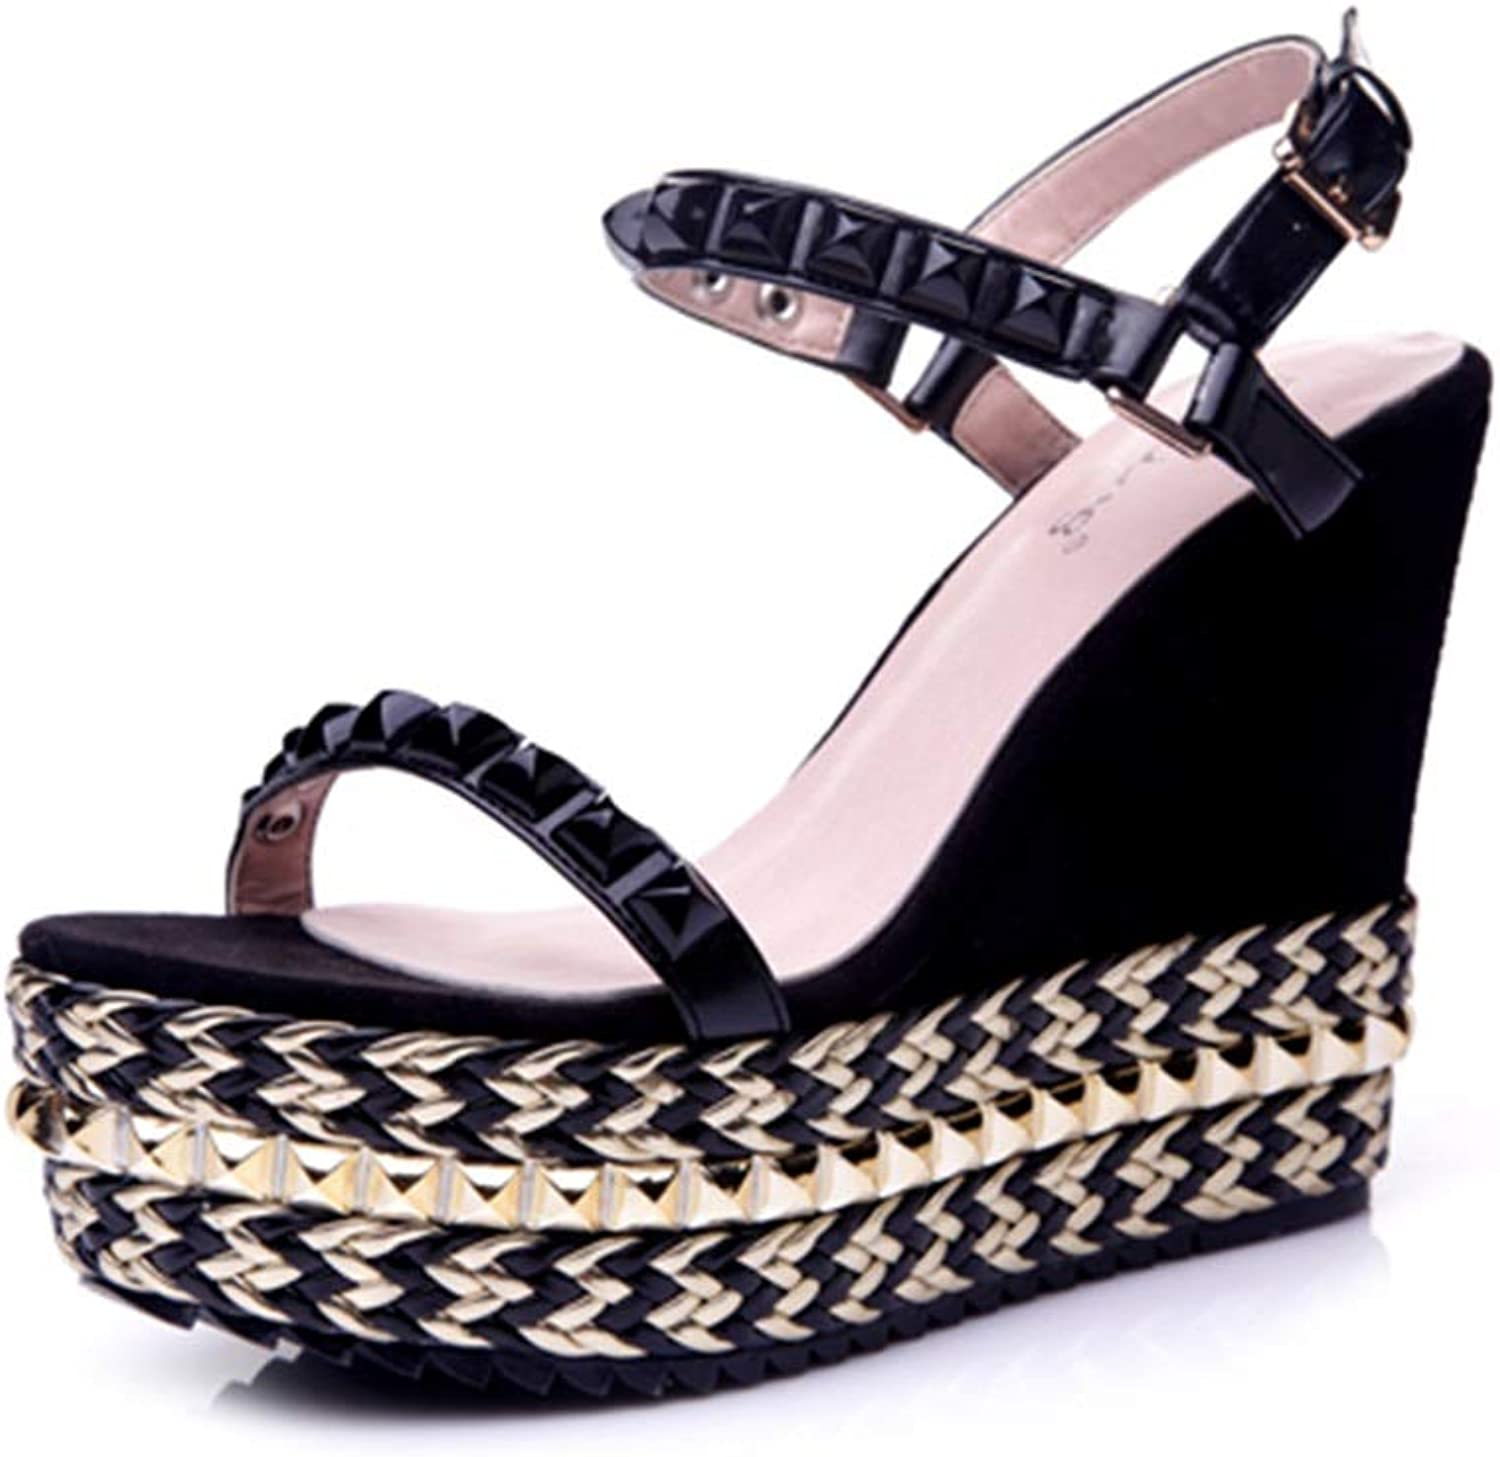 Summer Wedge sandals Waterproof Riveted Straw sandals Thick high-Heeled Small Size Female shoes Fashion Sexy Summer shoes (high 11cm) (Size   32)